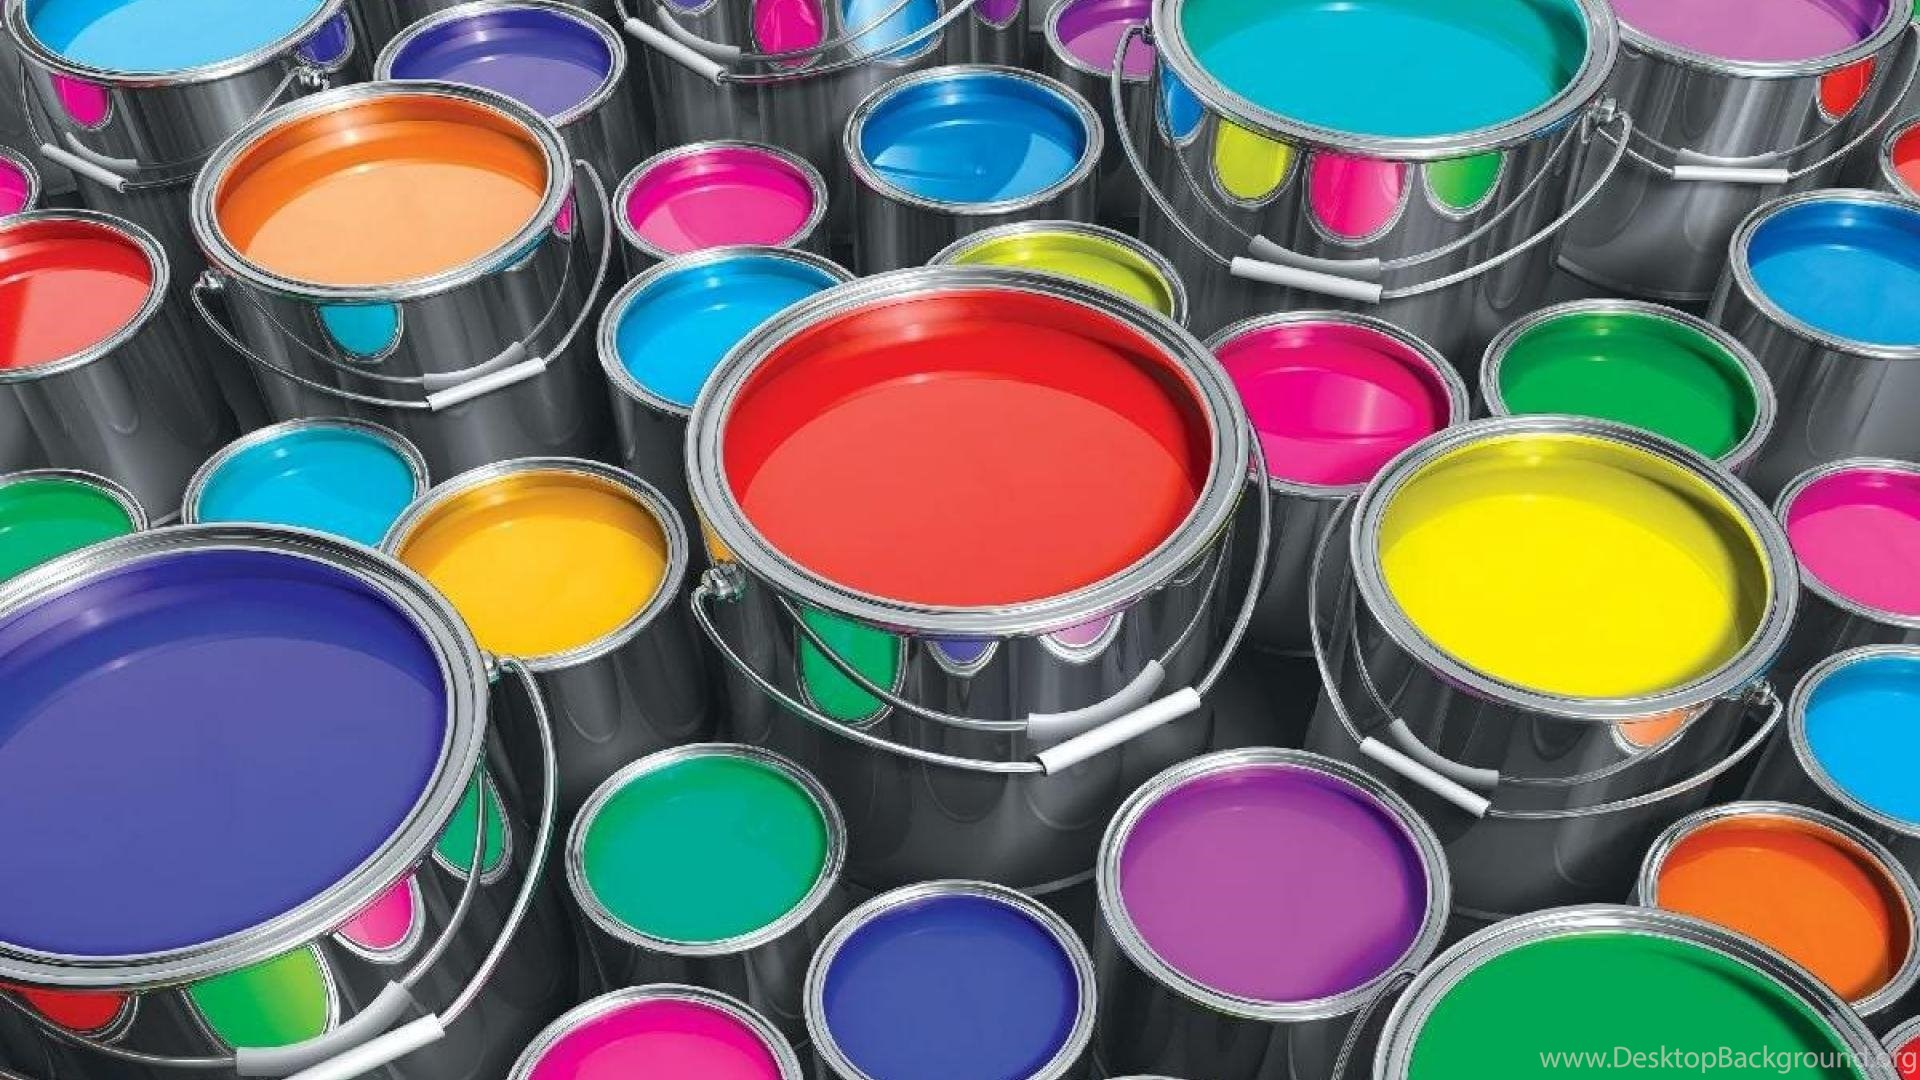 Color Paint Cans   Desktop Background